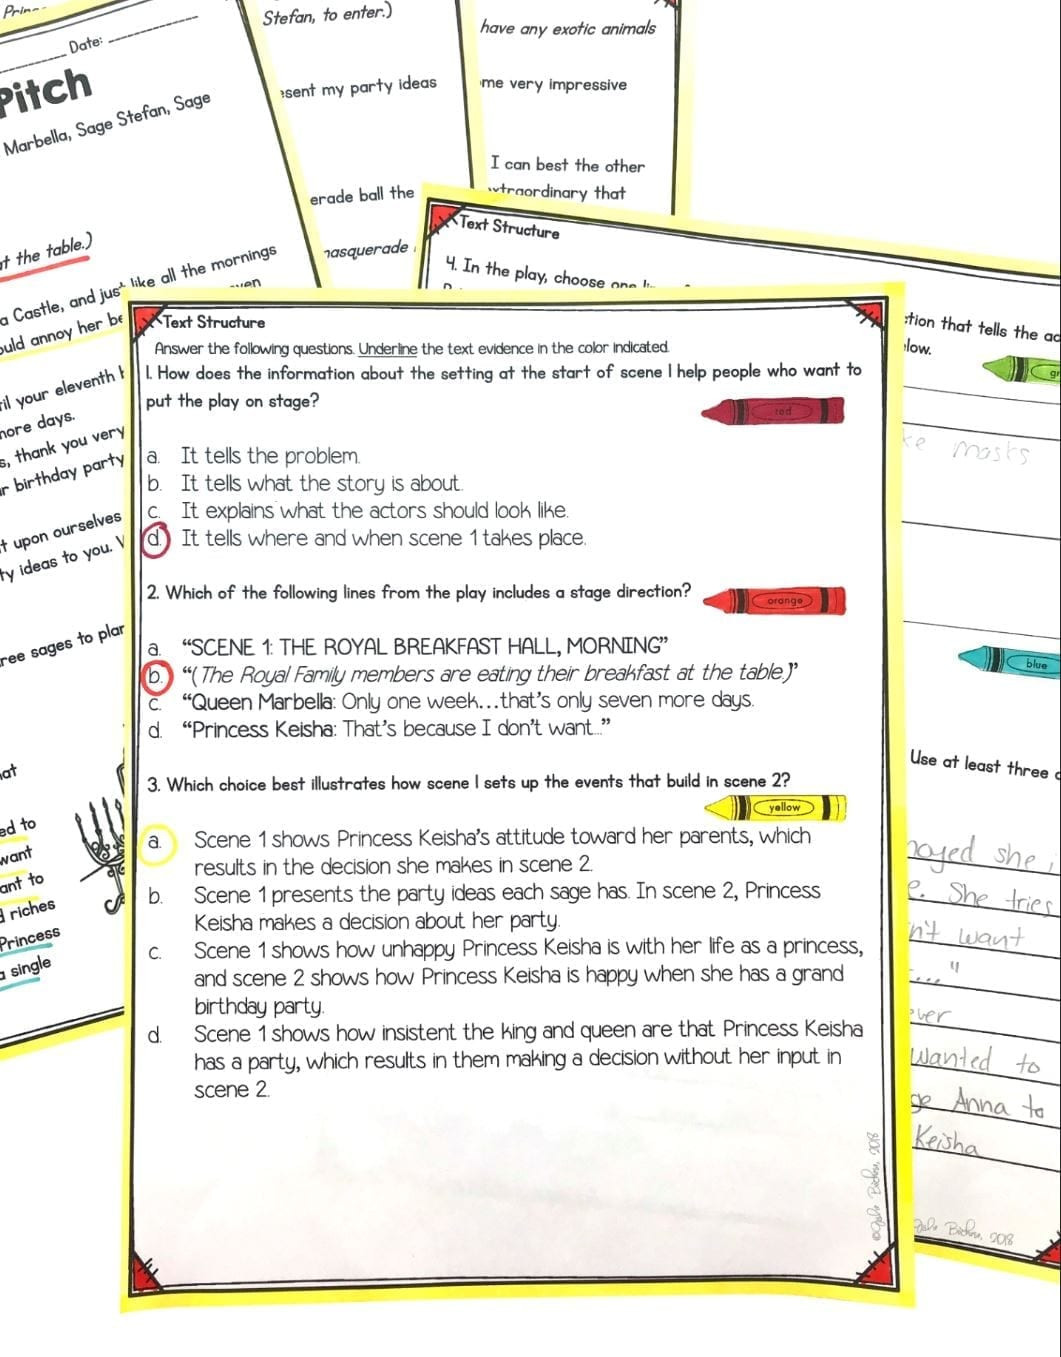 Text Structure Worksheets 4th Grade Text Structure In Stories Poems and Plays 4th Grade Rl 4 5 & 5th Grade Rl 5 5